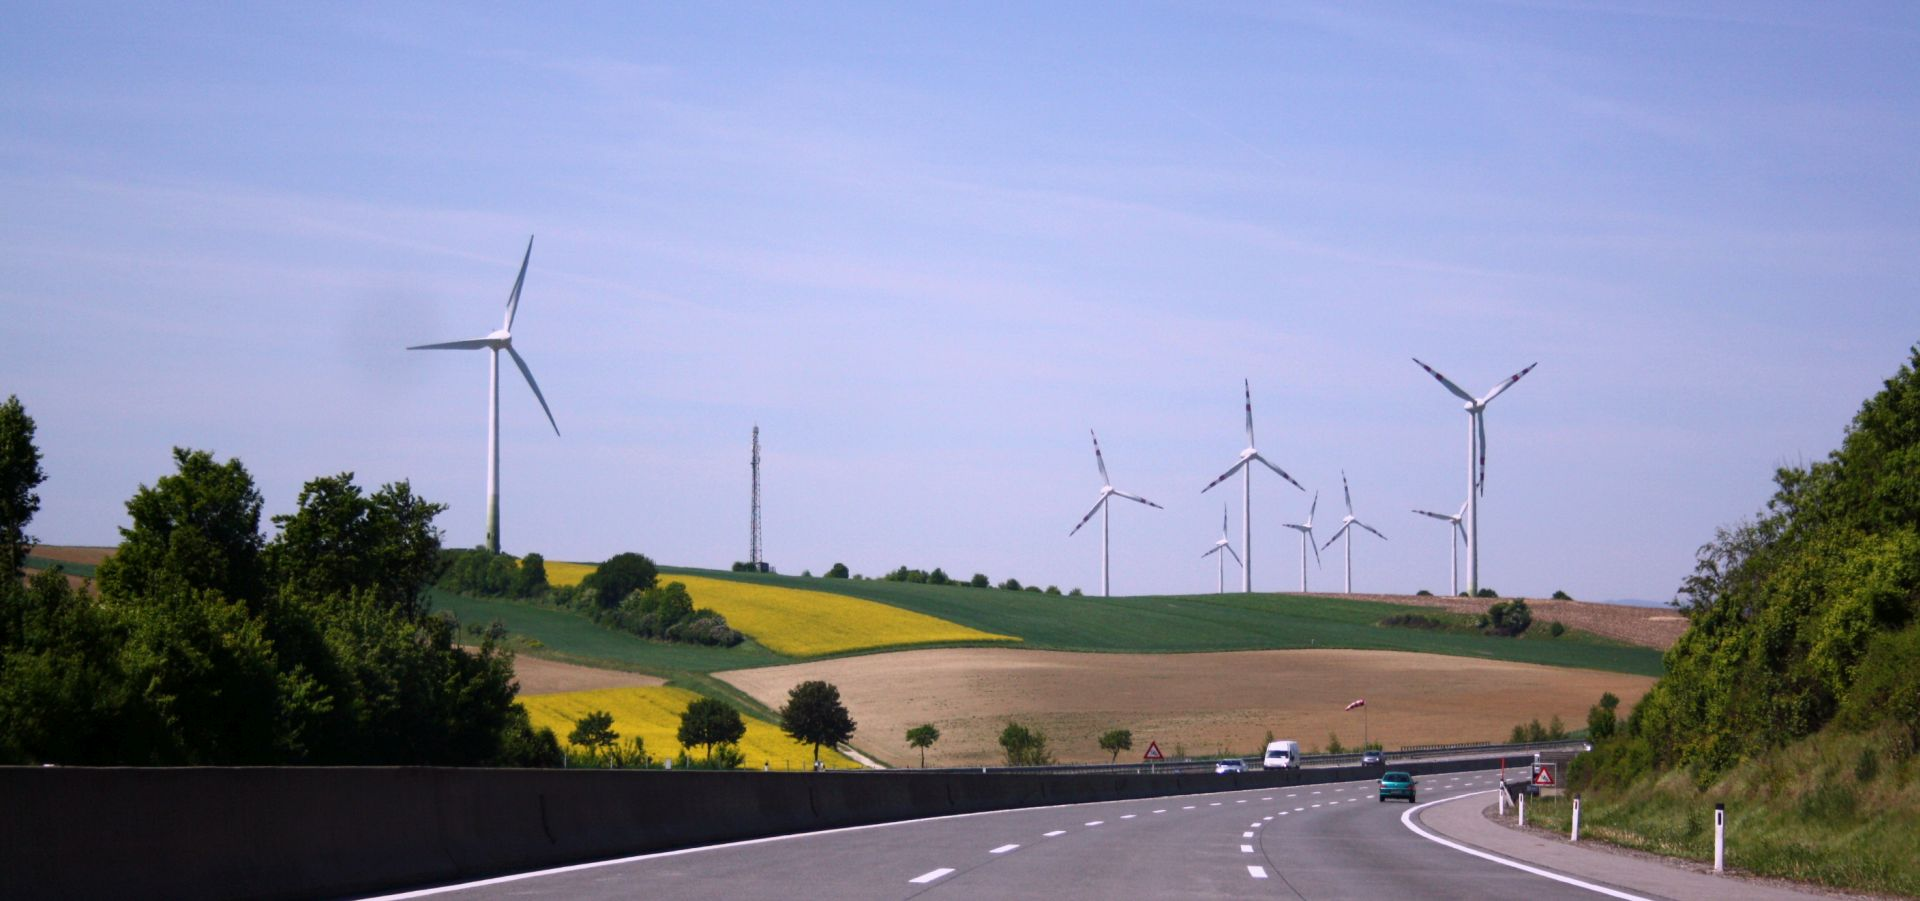 Germanys Energy Consumption In 2017 Transition Load Wind Turbine Wiring Diagram Get Free Image About Turbines Seen From The German Highway Fields Of Yellow Flowers